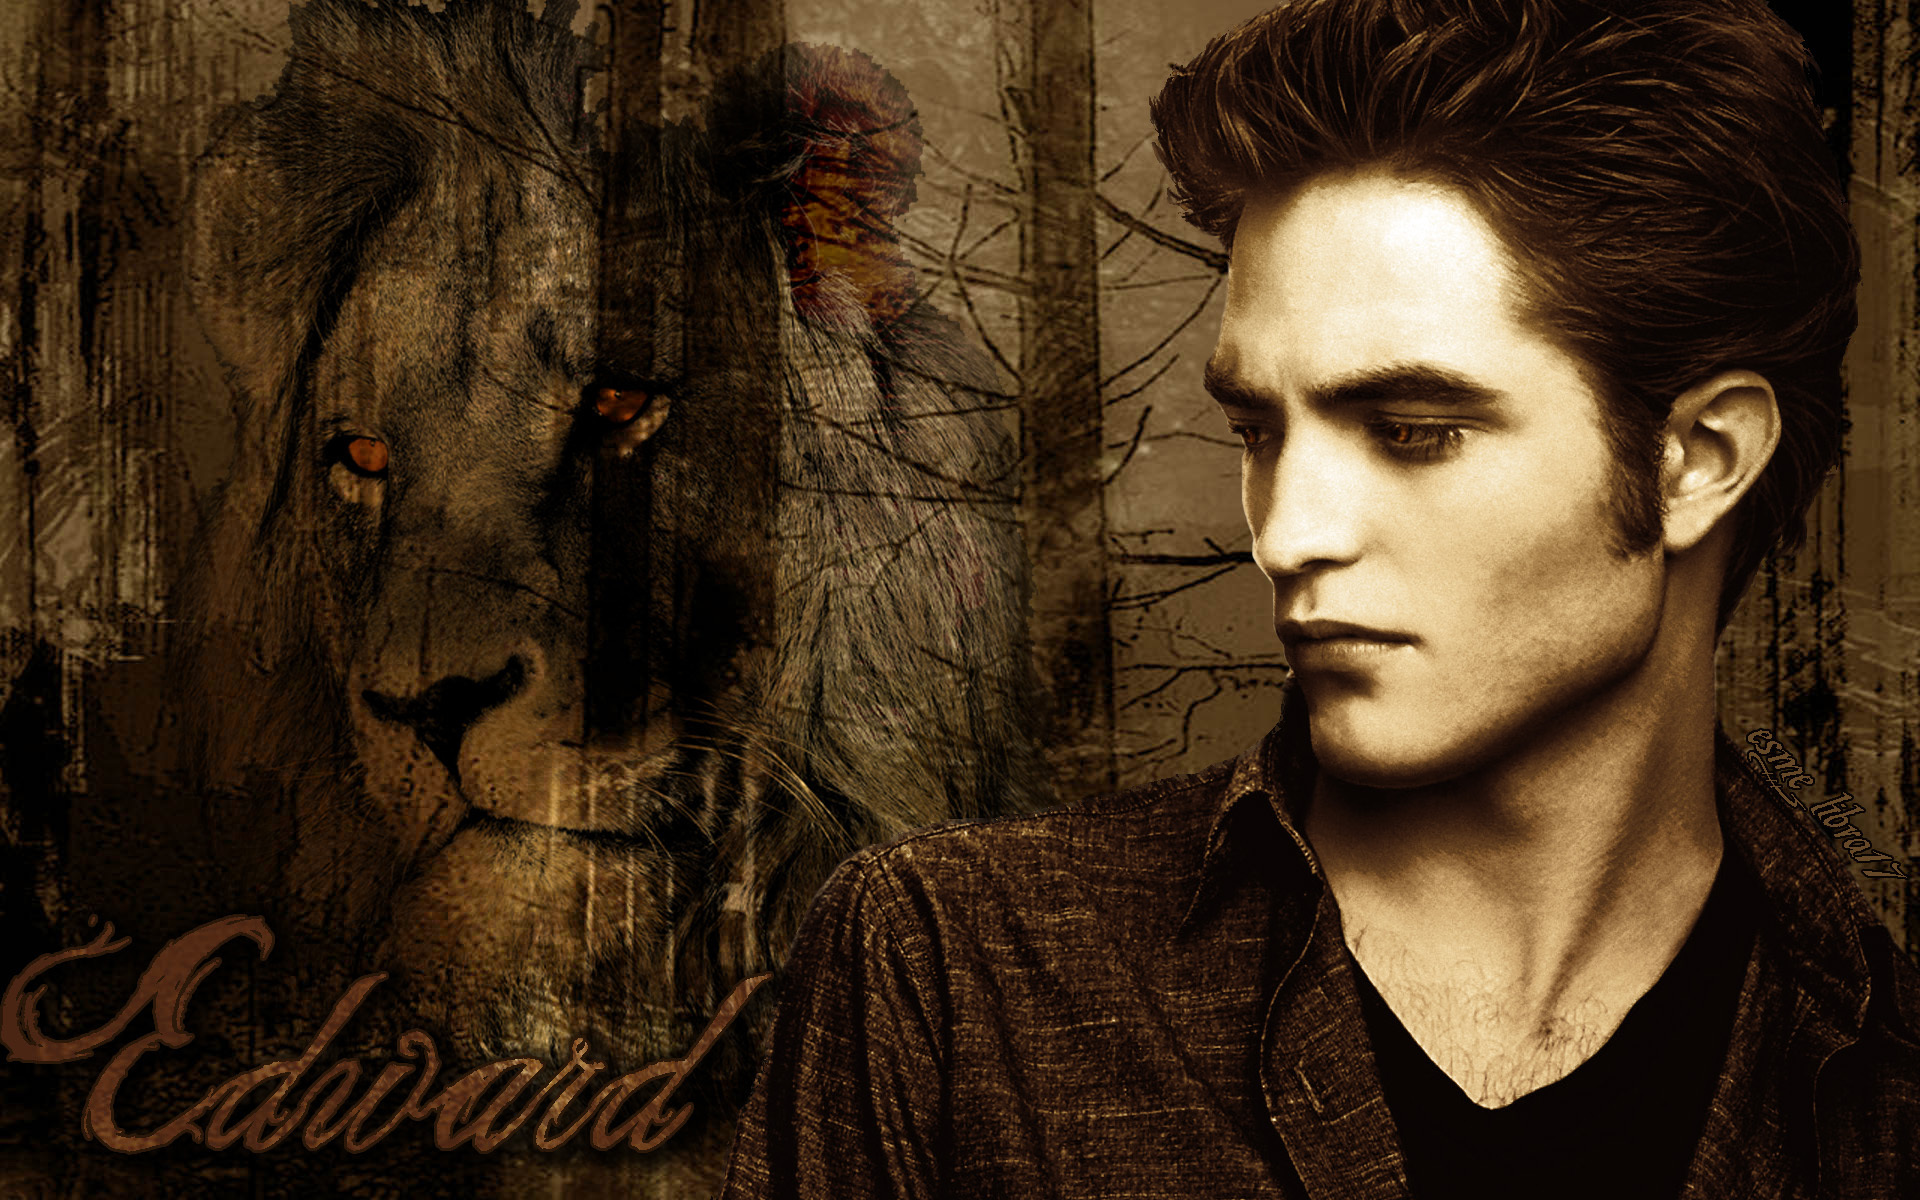 Pin edward crepusculo on pinterest Twilight edward photos